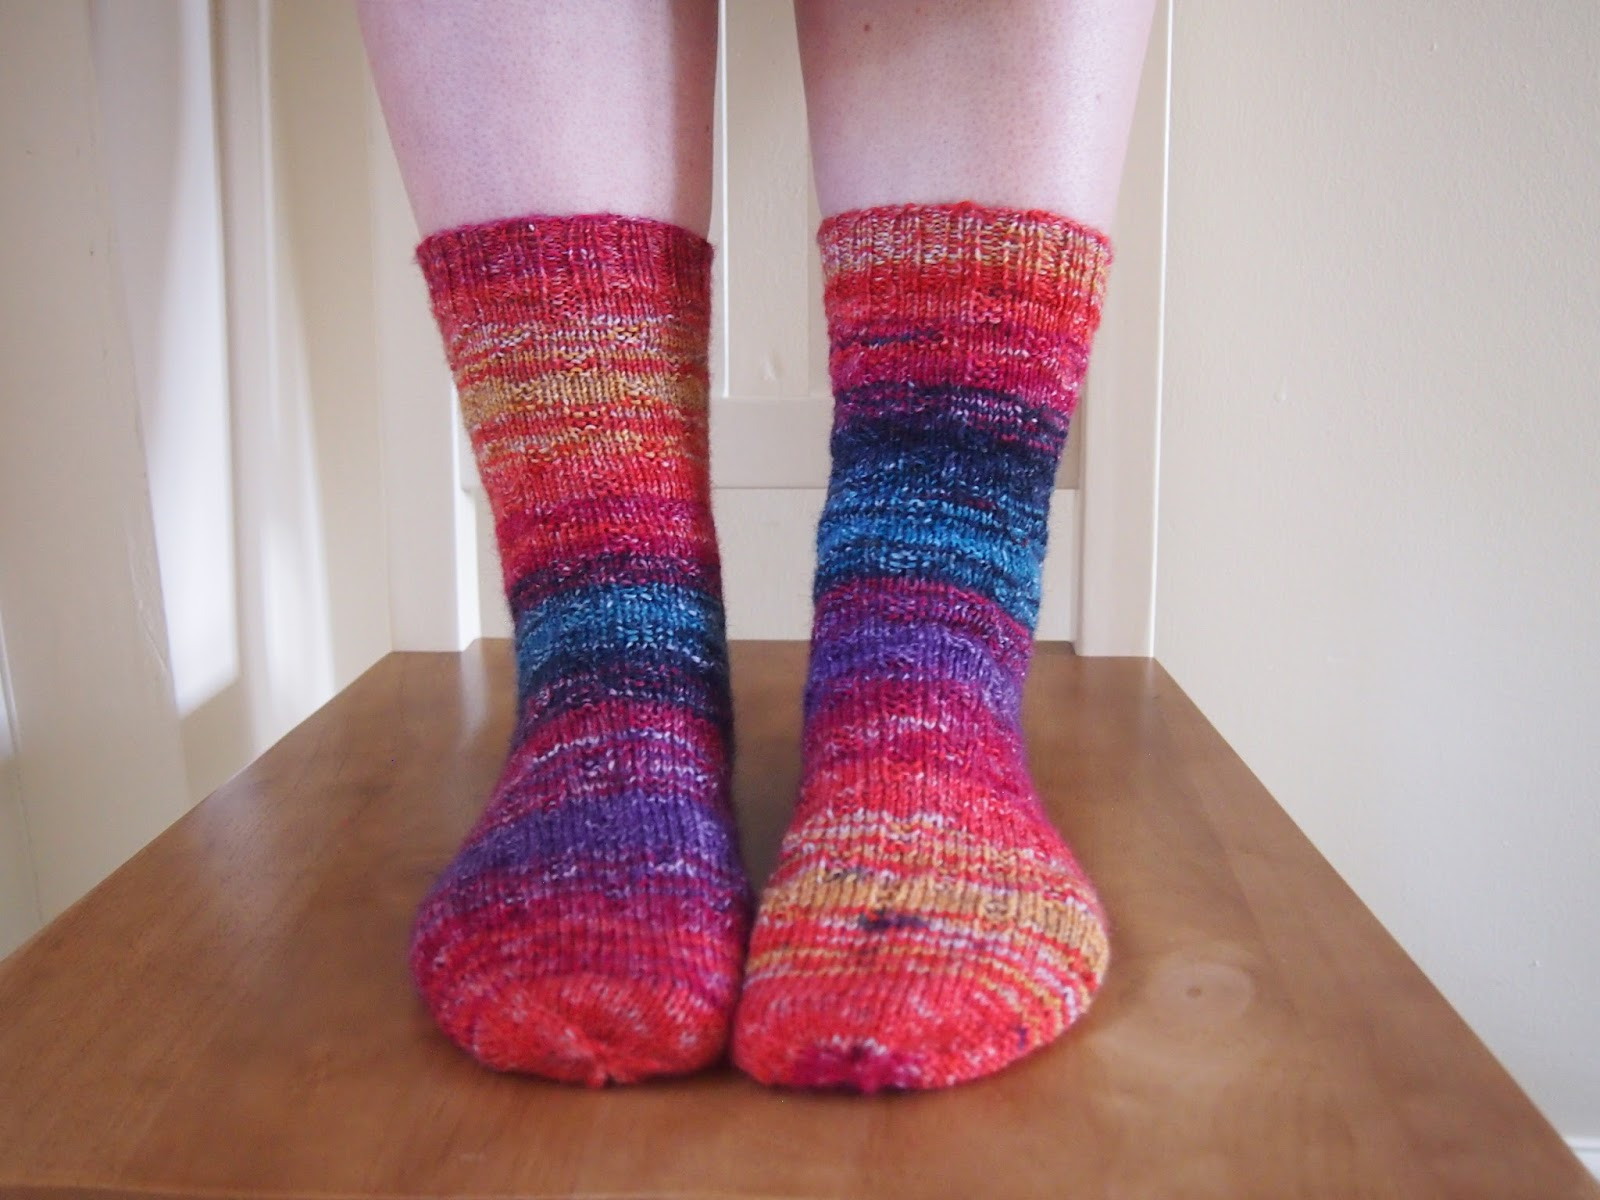 Nightingale & Dolittle: Knitting: My first socks!